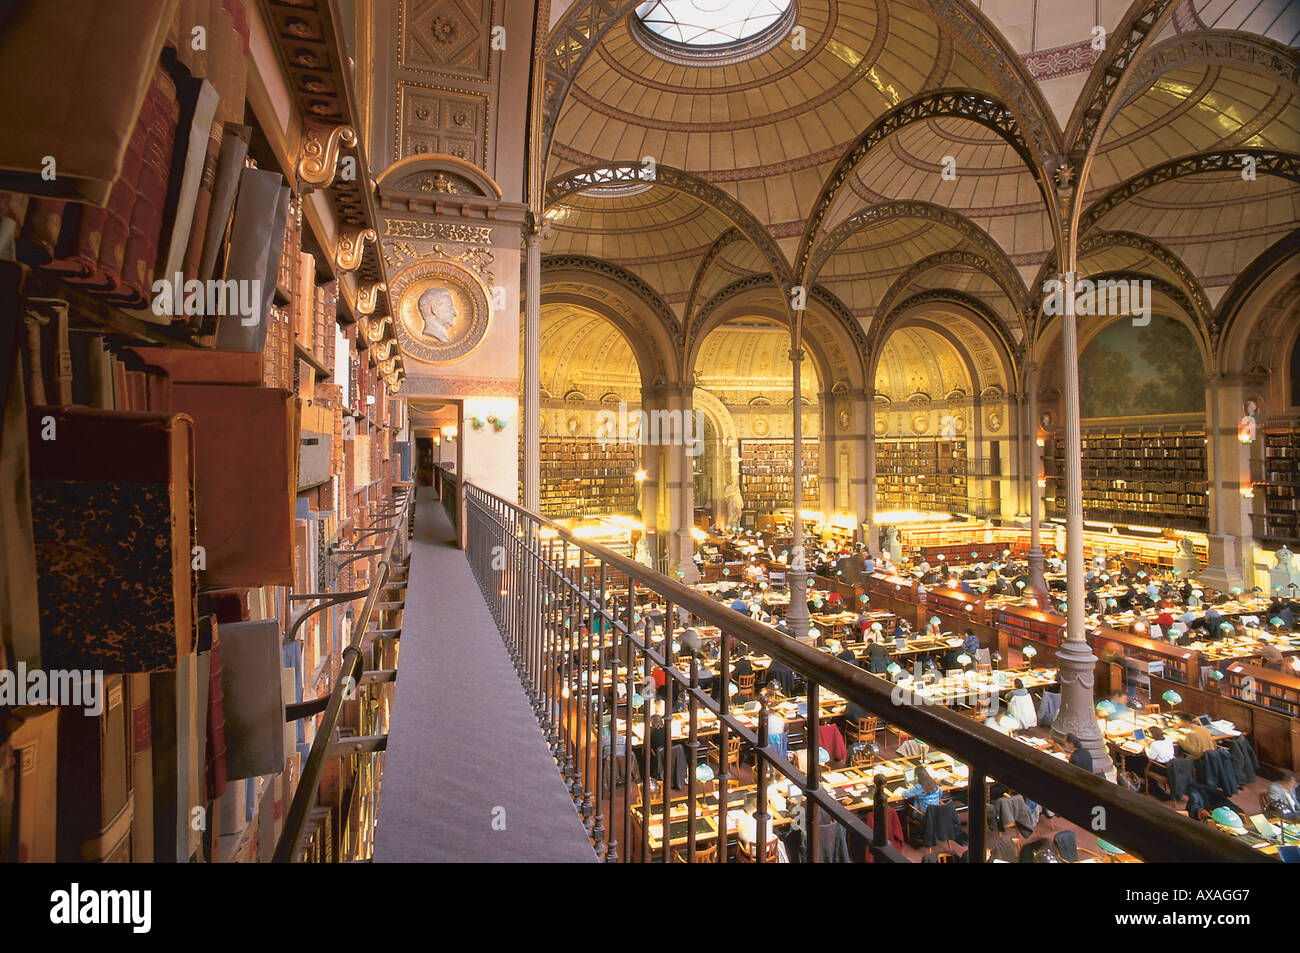 Reading hall of the National library (Bibliotheque nationale de France), BnF, Paris, France - Stock Image